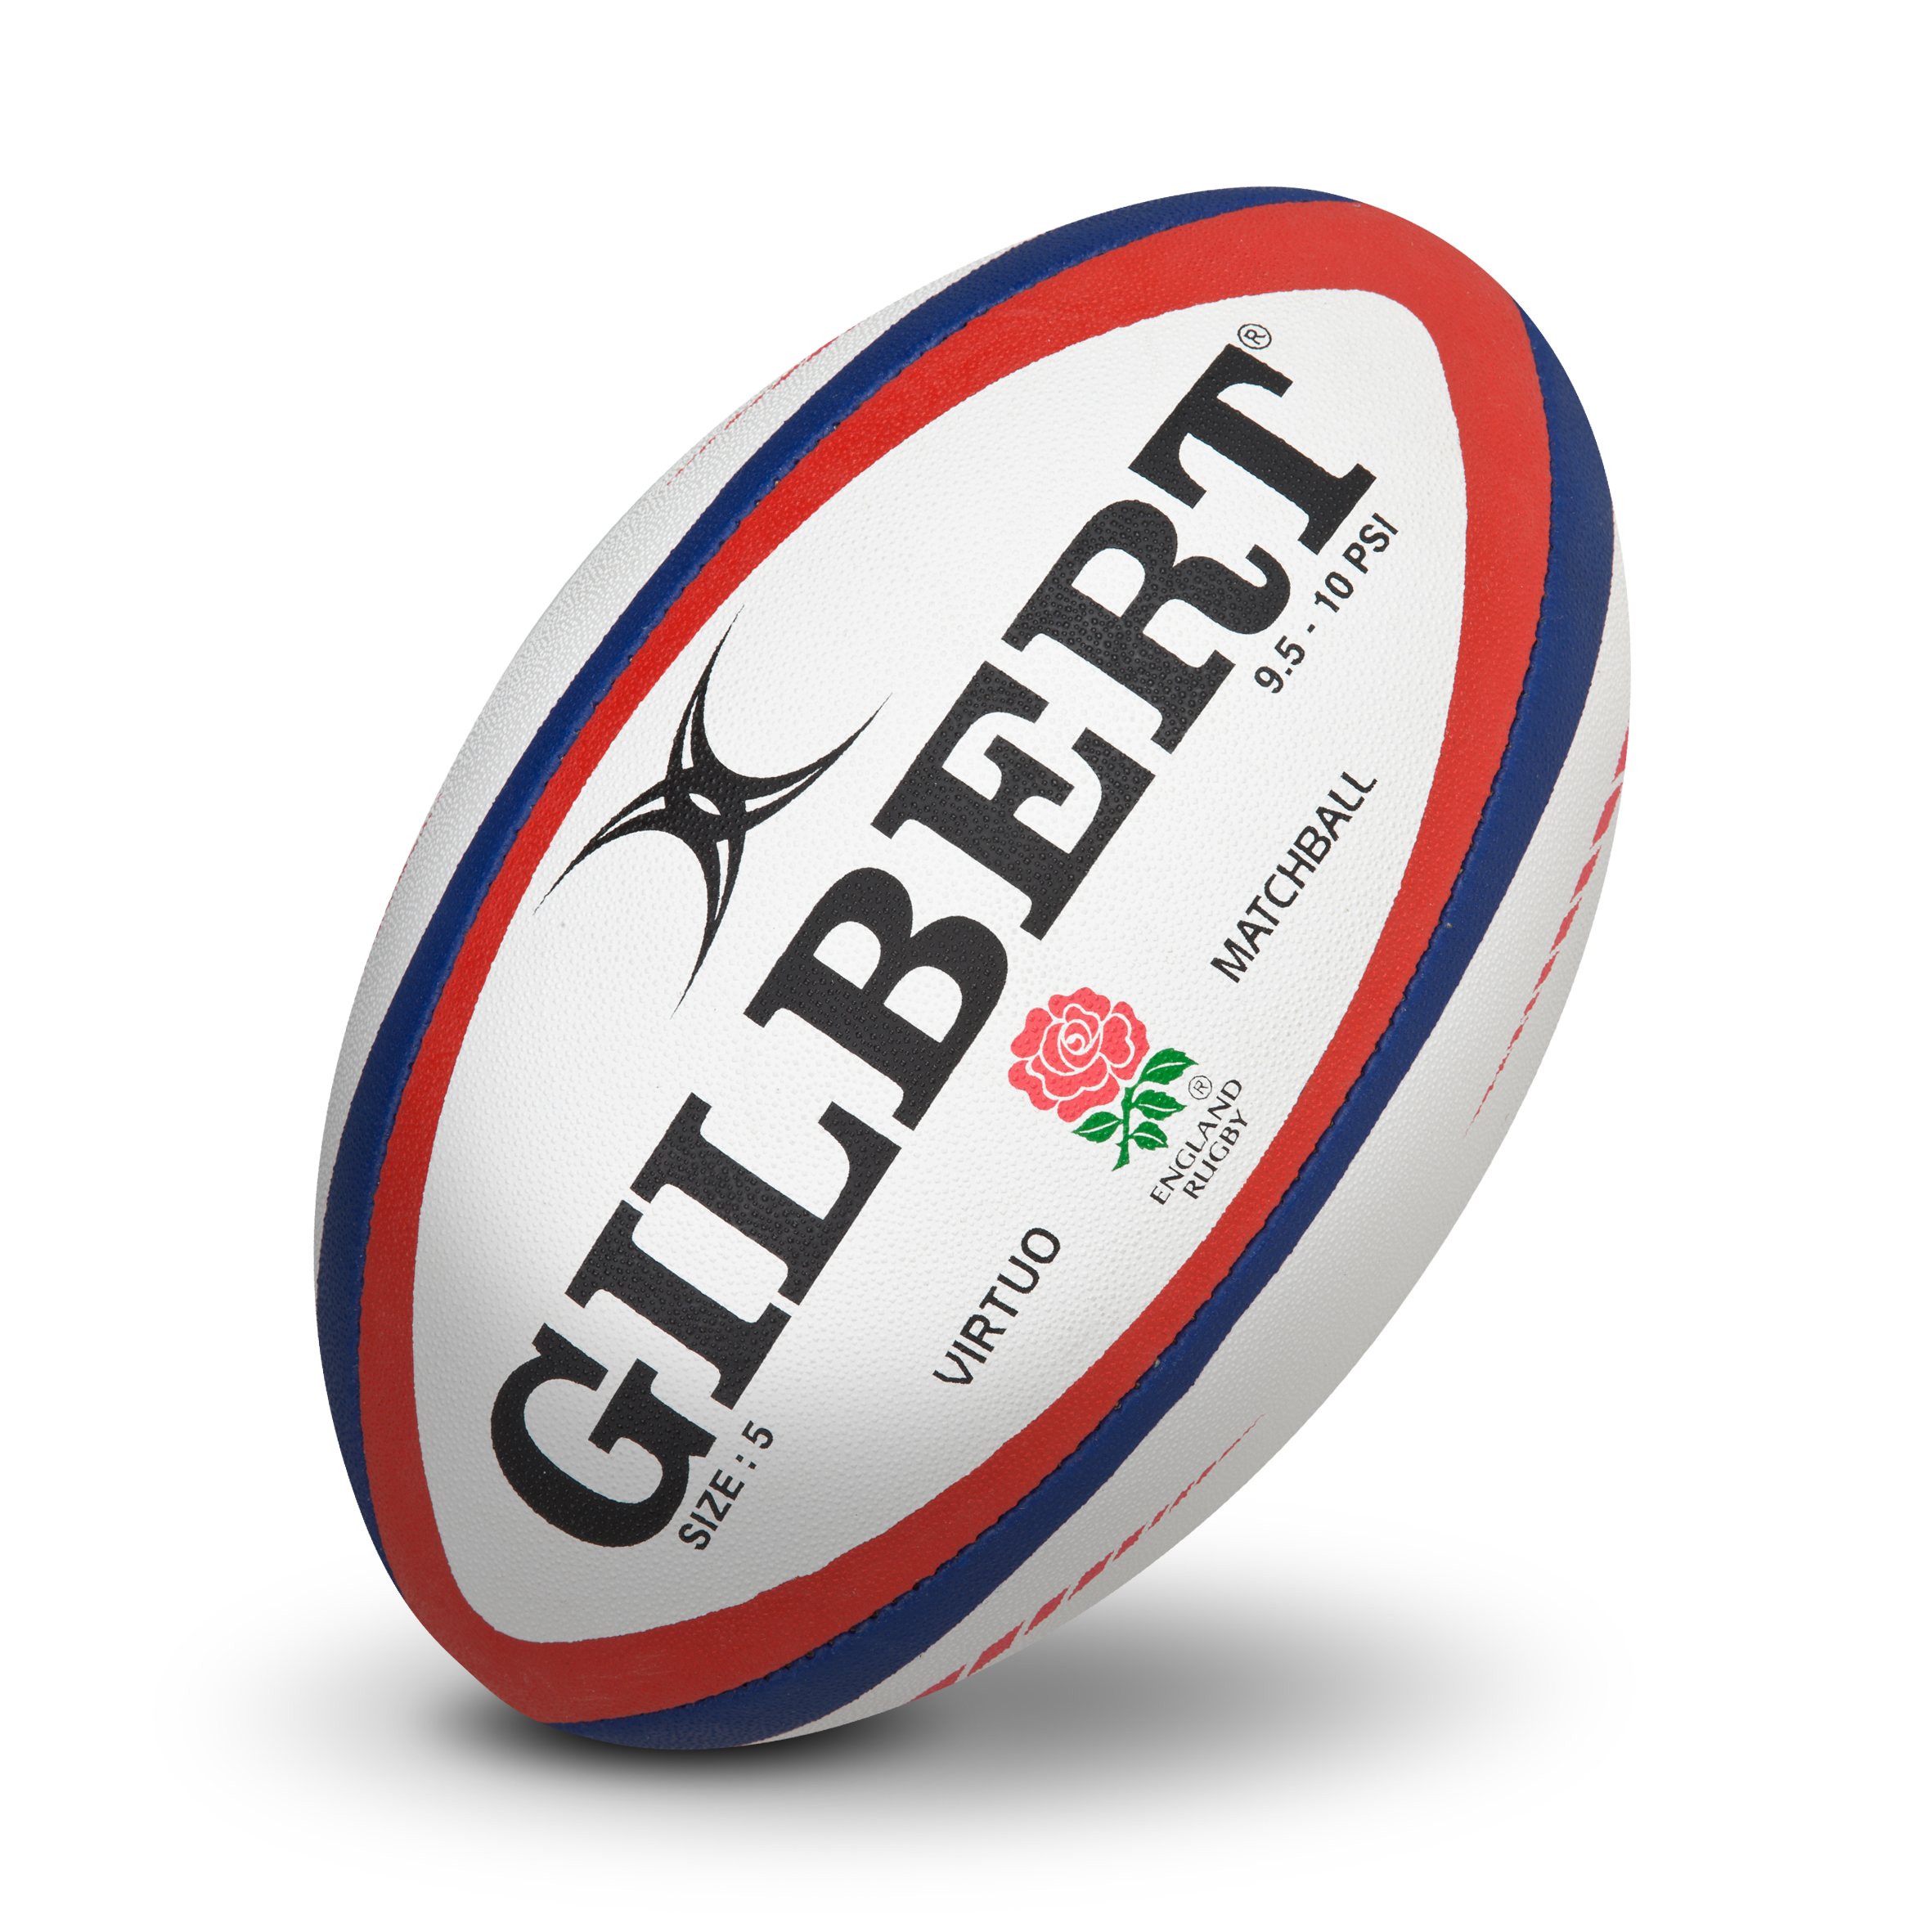 Gilbert Rugby Virtuo Official Match Ball - White/Red